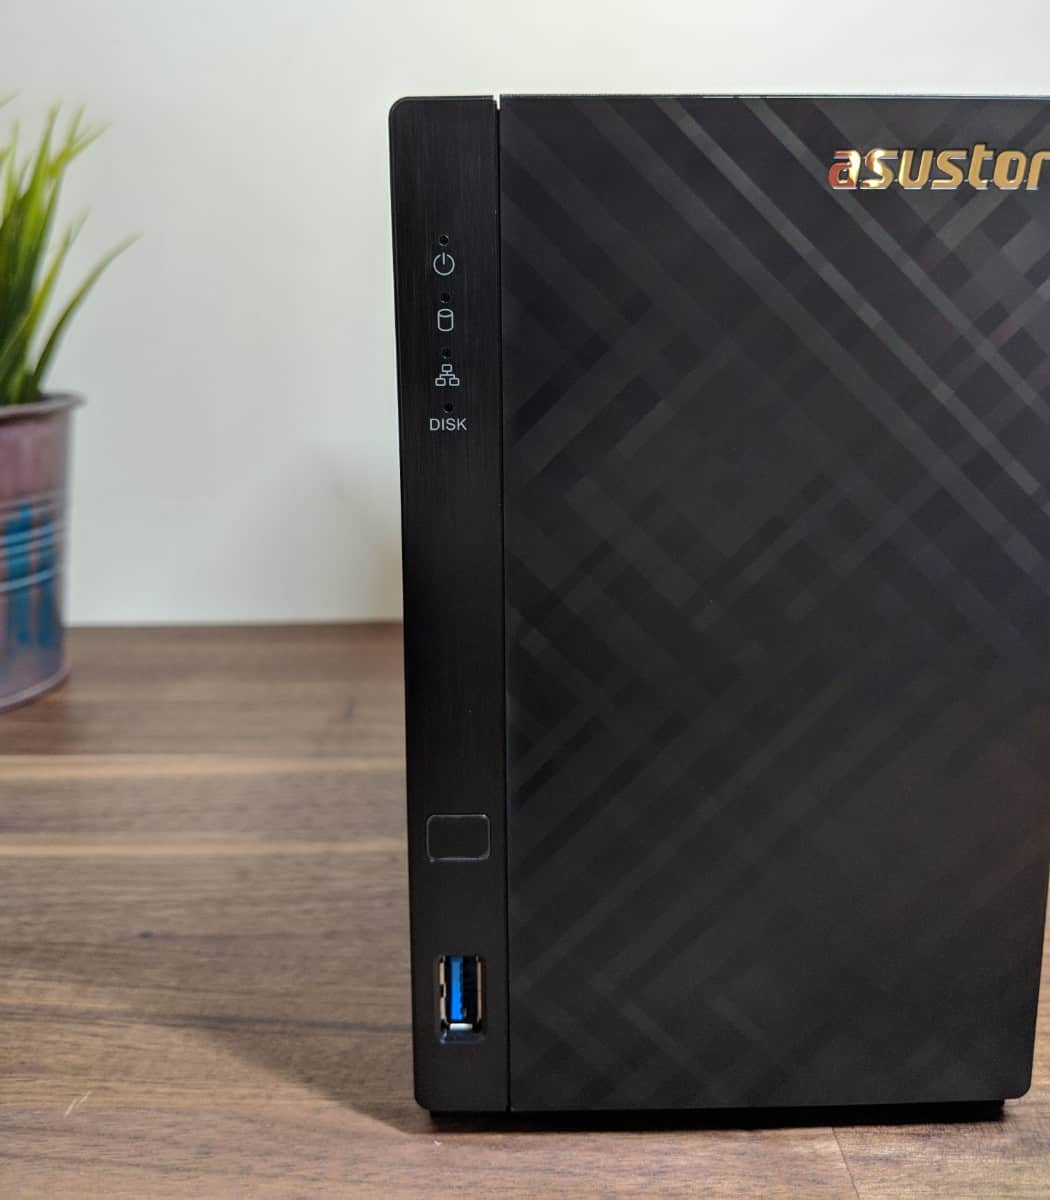 Asustor-AS1002T_v2-Photos-28 Asustor AS1002T V2 Review